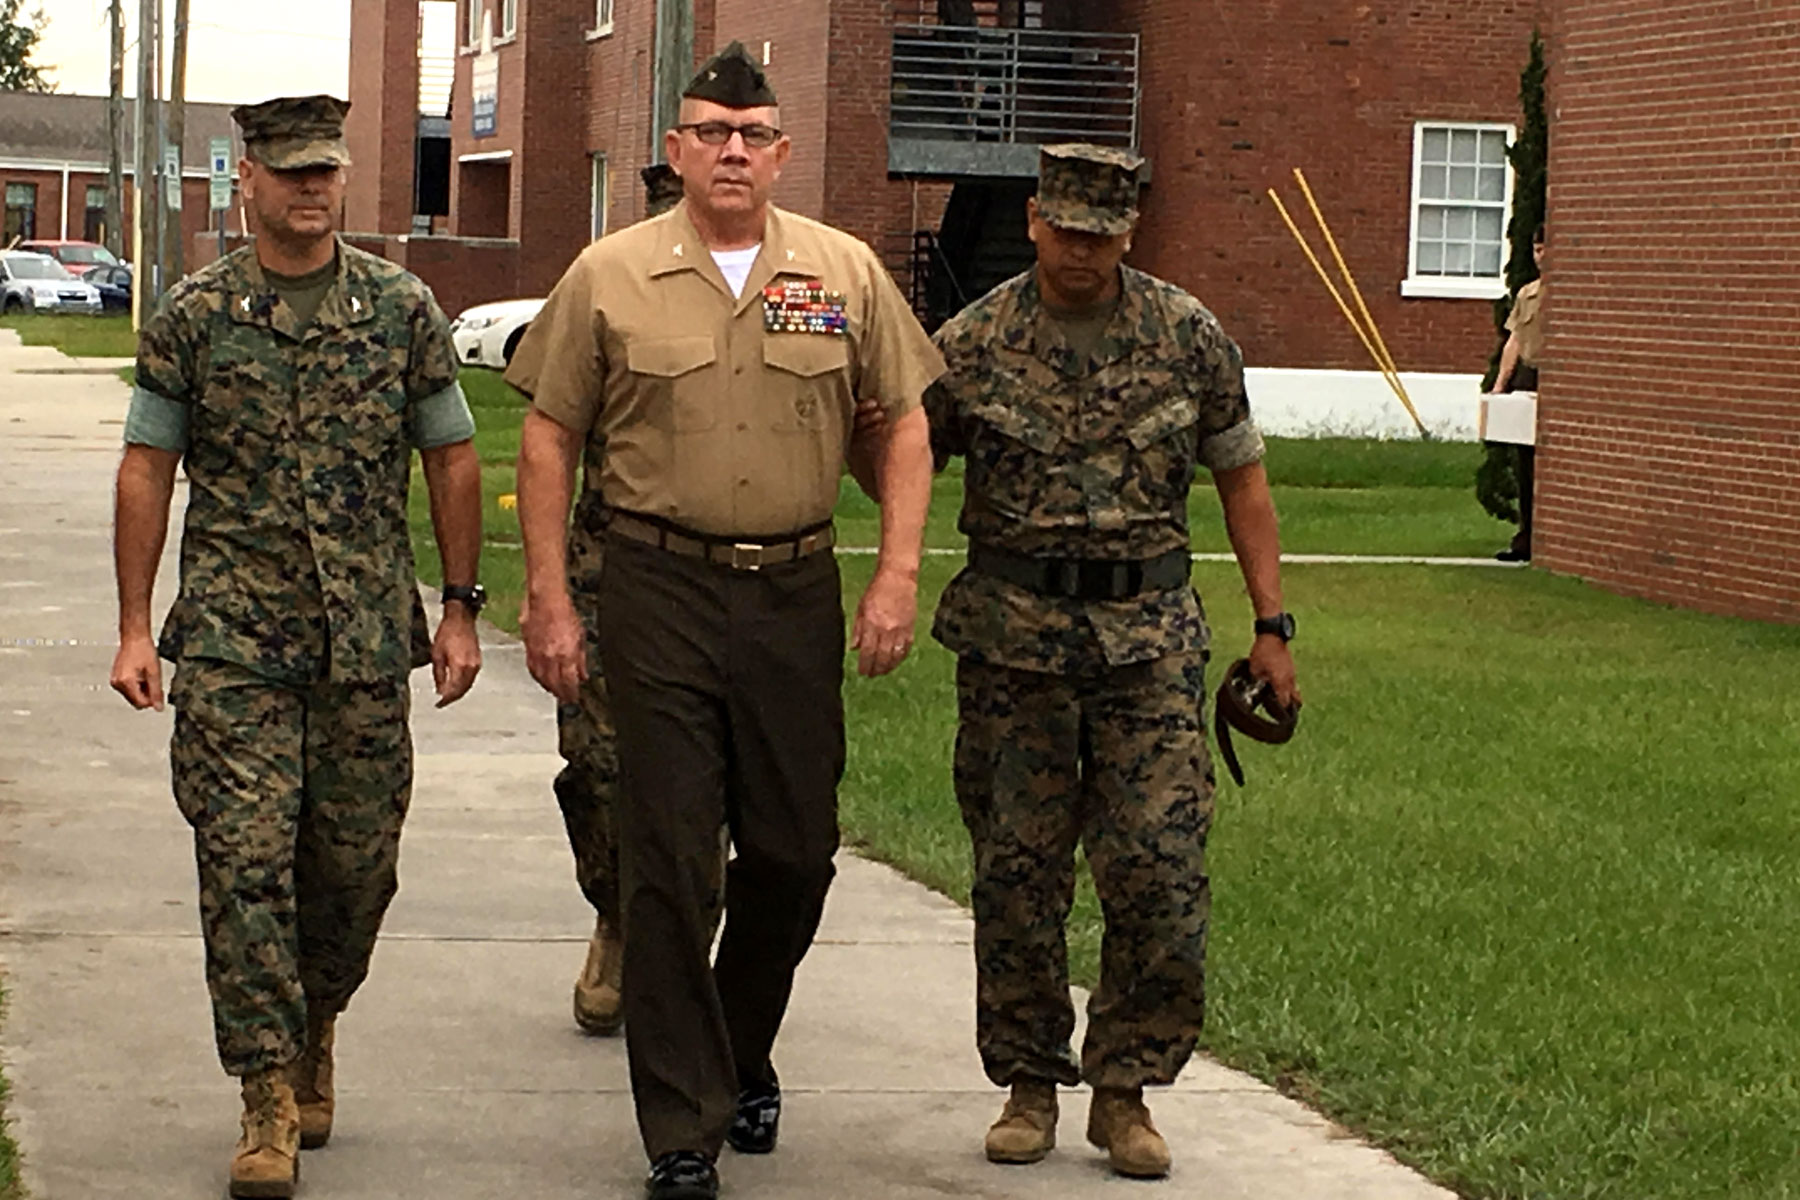 Marine Colonel Sentenced to 5-1/2 Years for Molesting ...